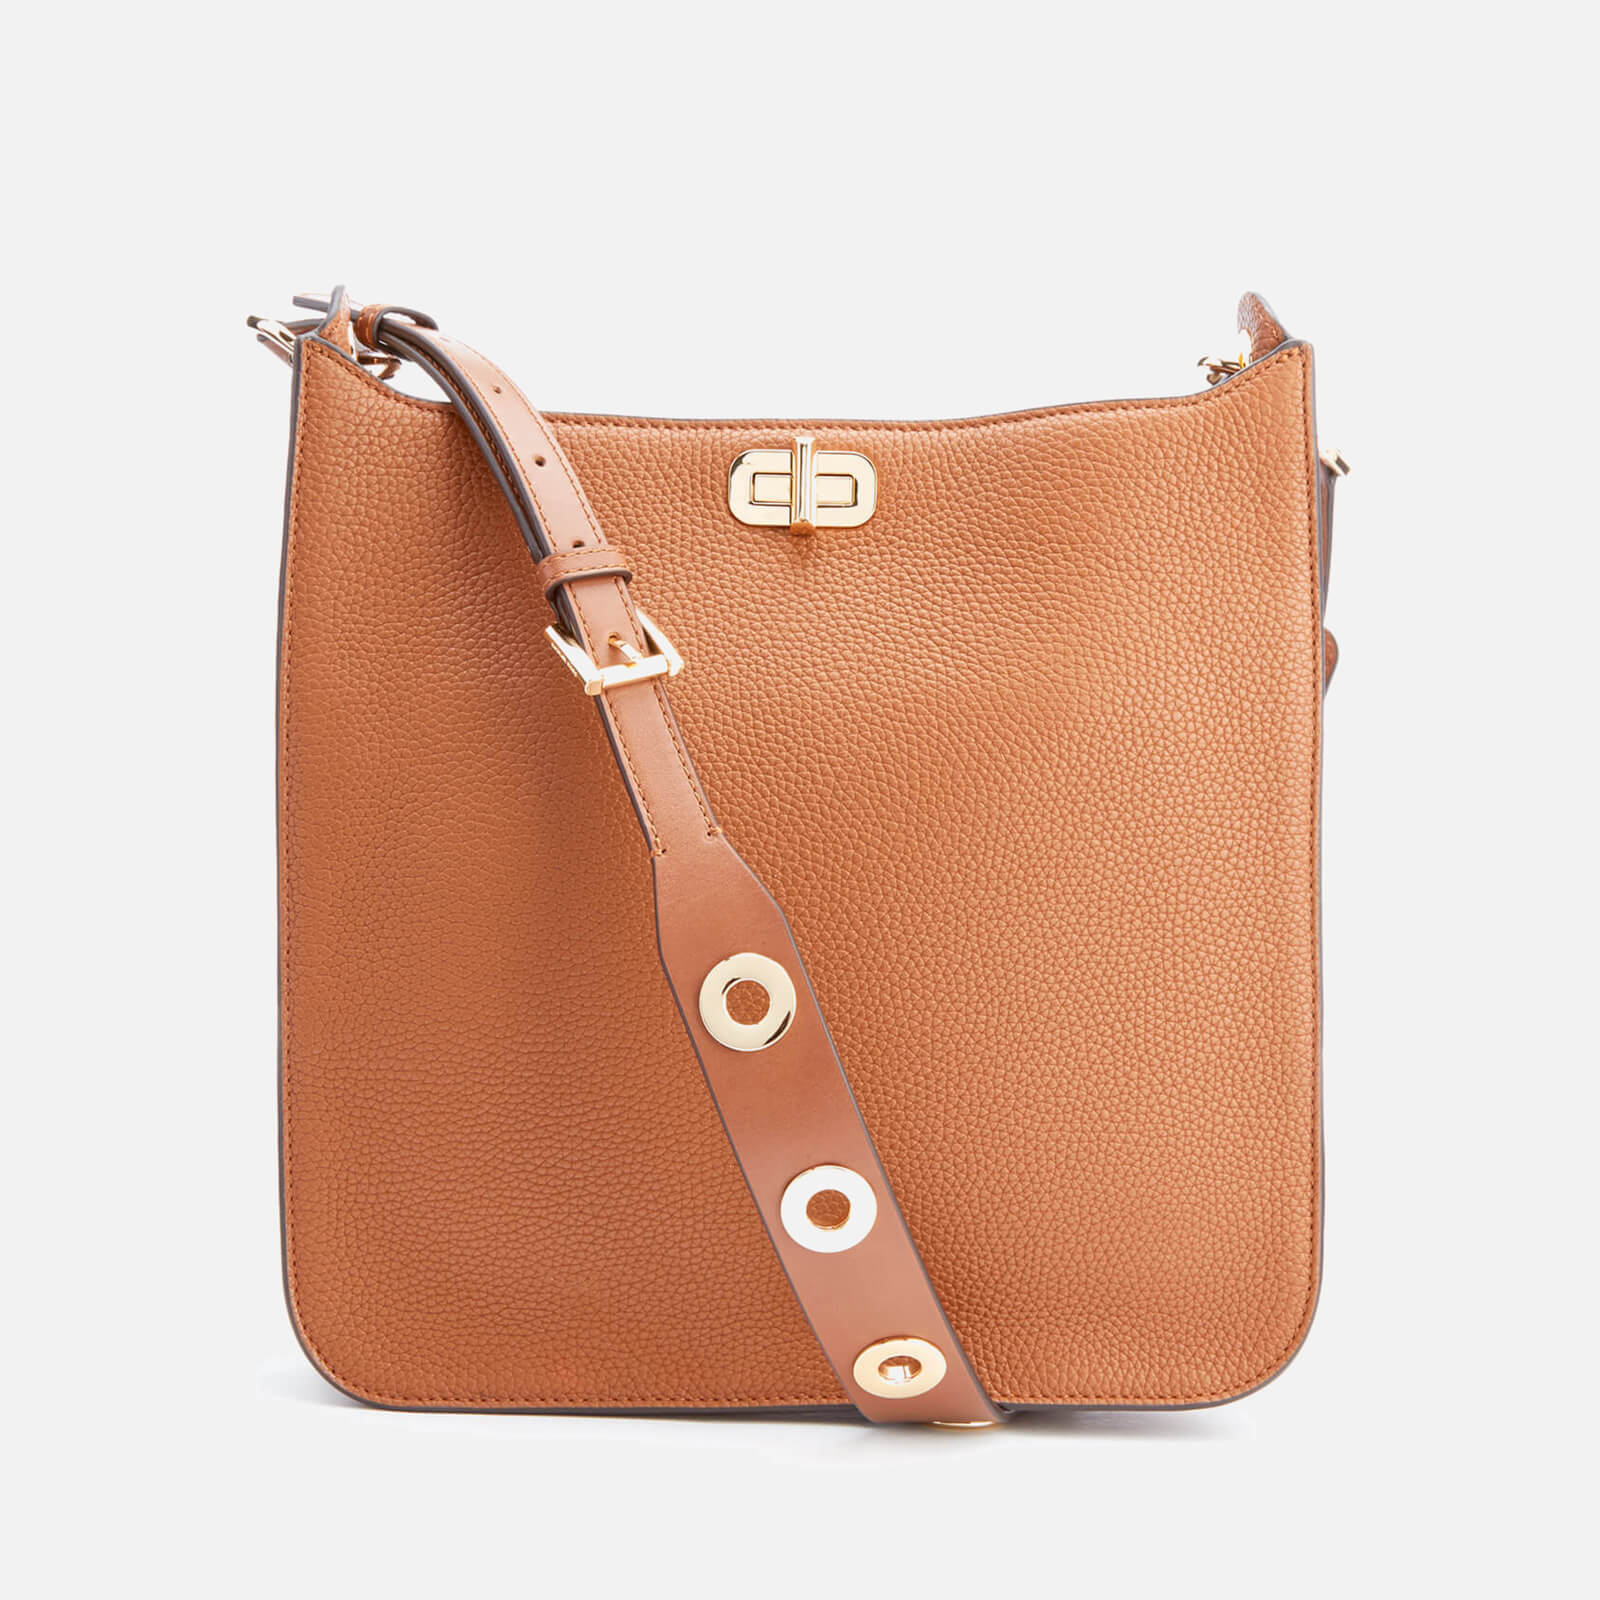 051c52ad9a4c MICHAEL MICHAEL KORS Women s Sullivan Large North South Messenger Bag -  Luggage - Free UK Delivery over £50